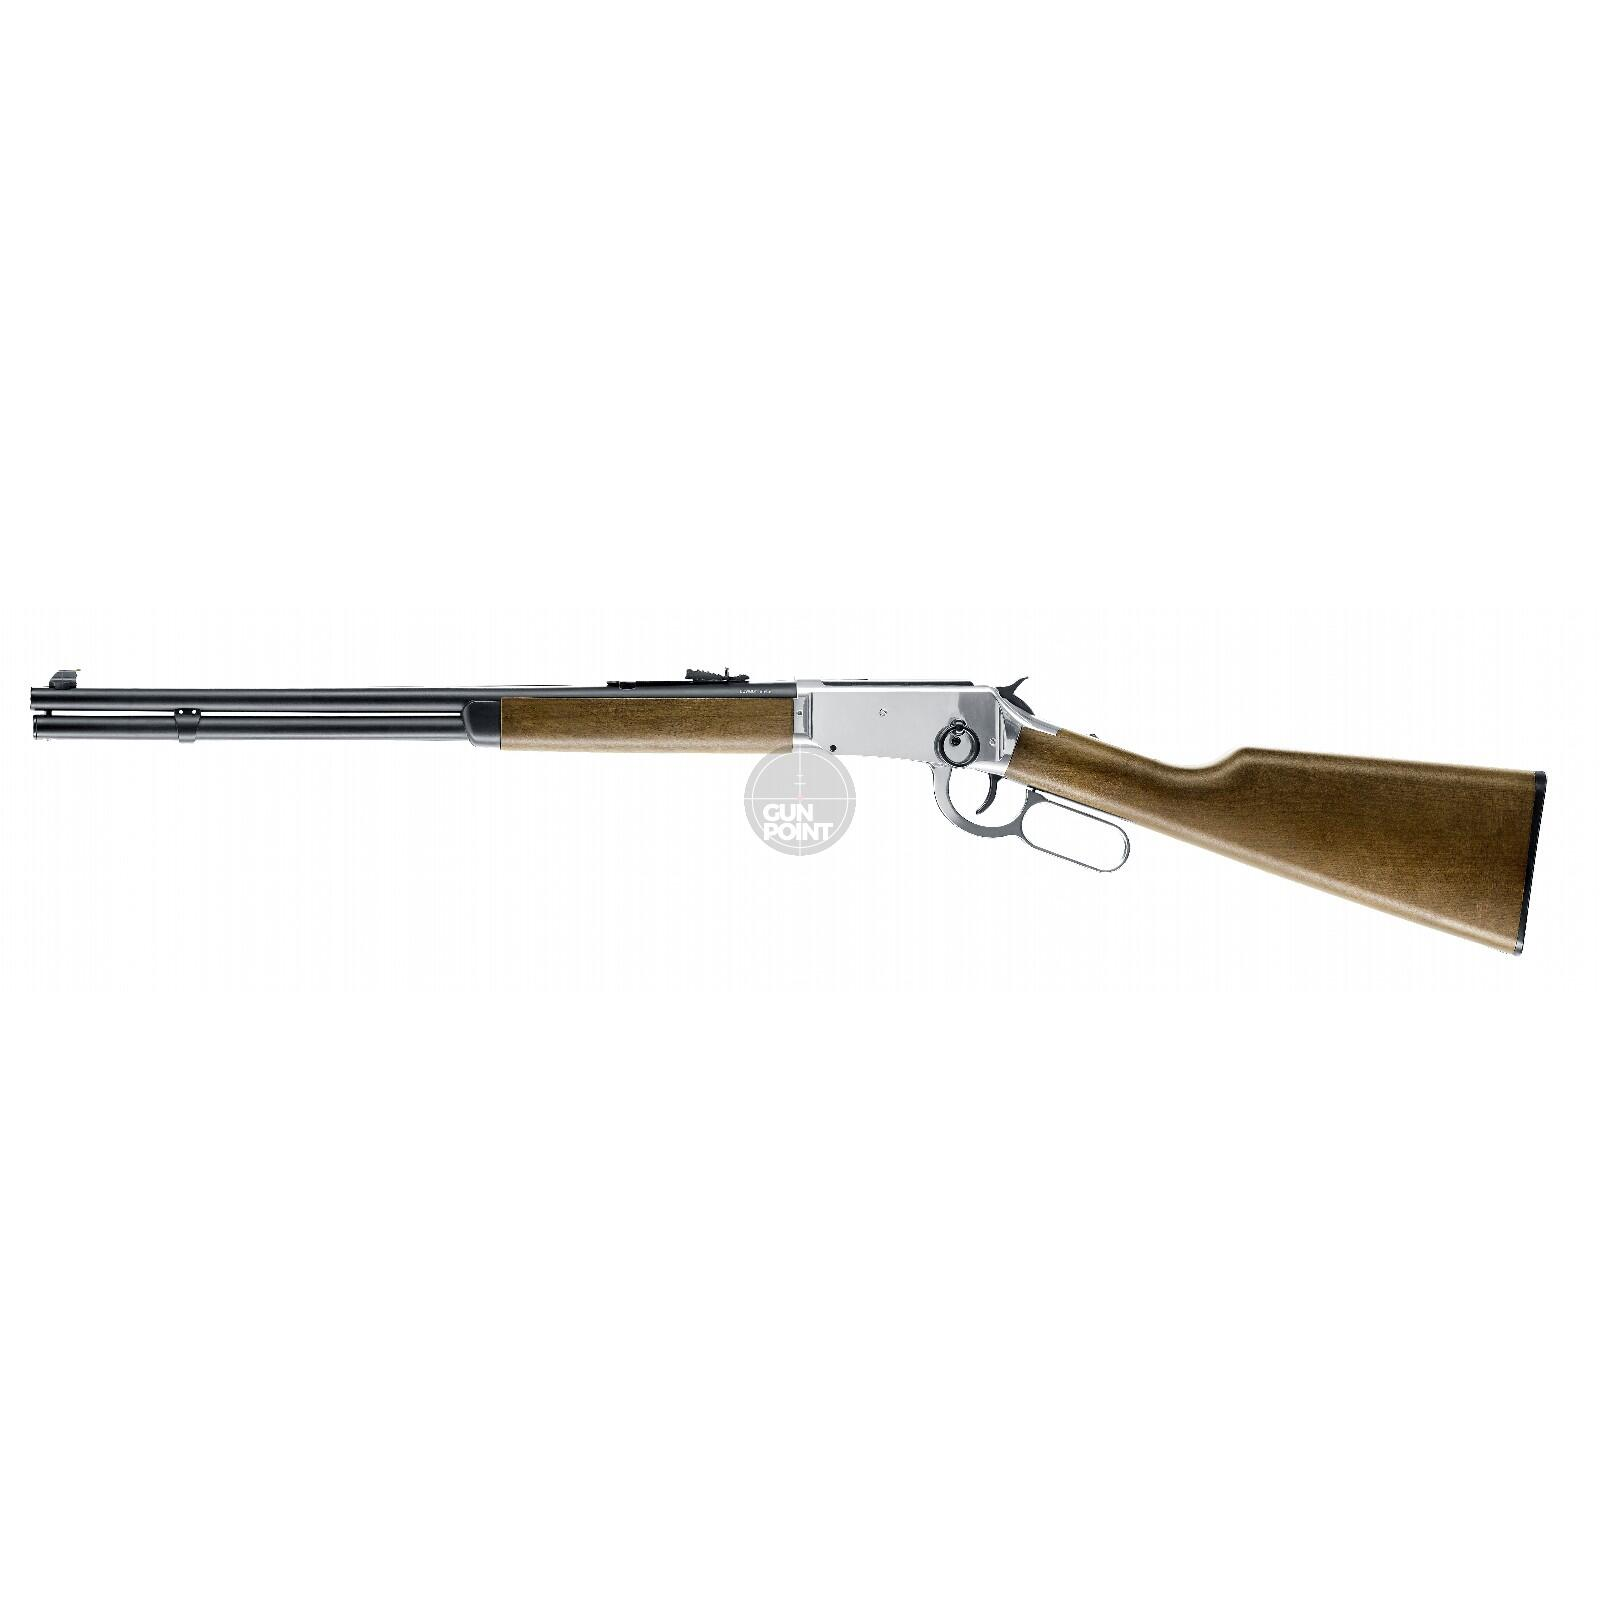 Luftgewehr - Legends - Cowboy Rifle - Co2-System - Kal. 4,5 mm BB - Chrome